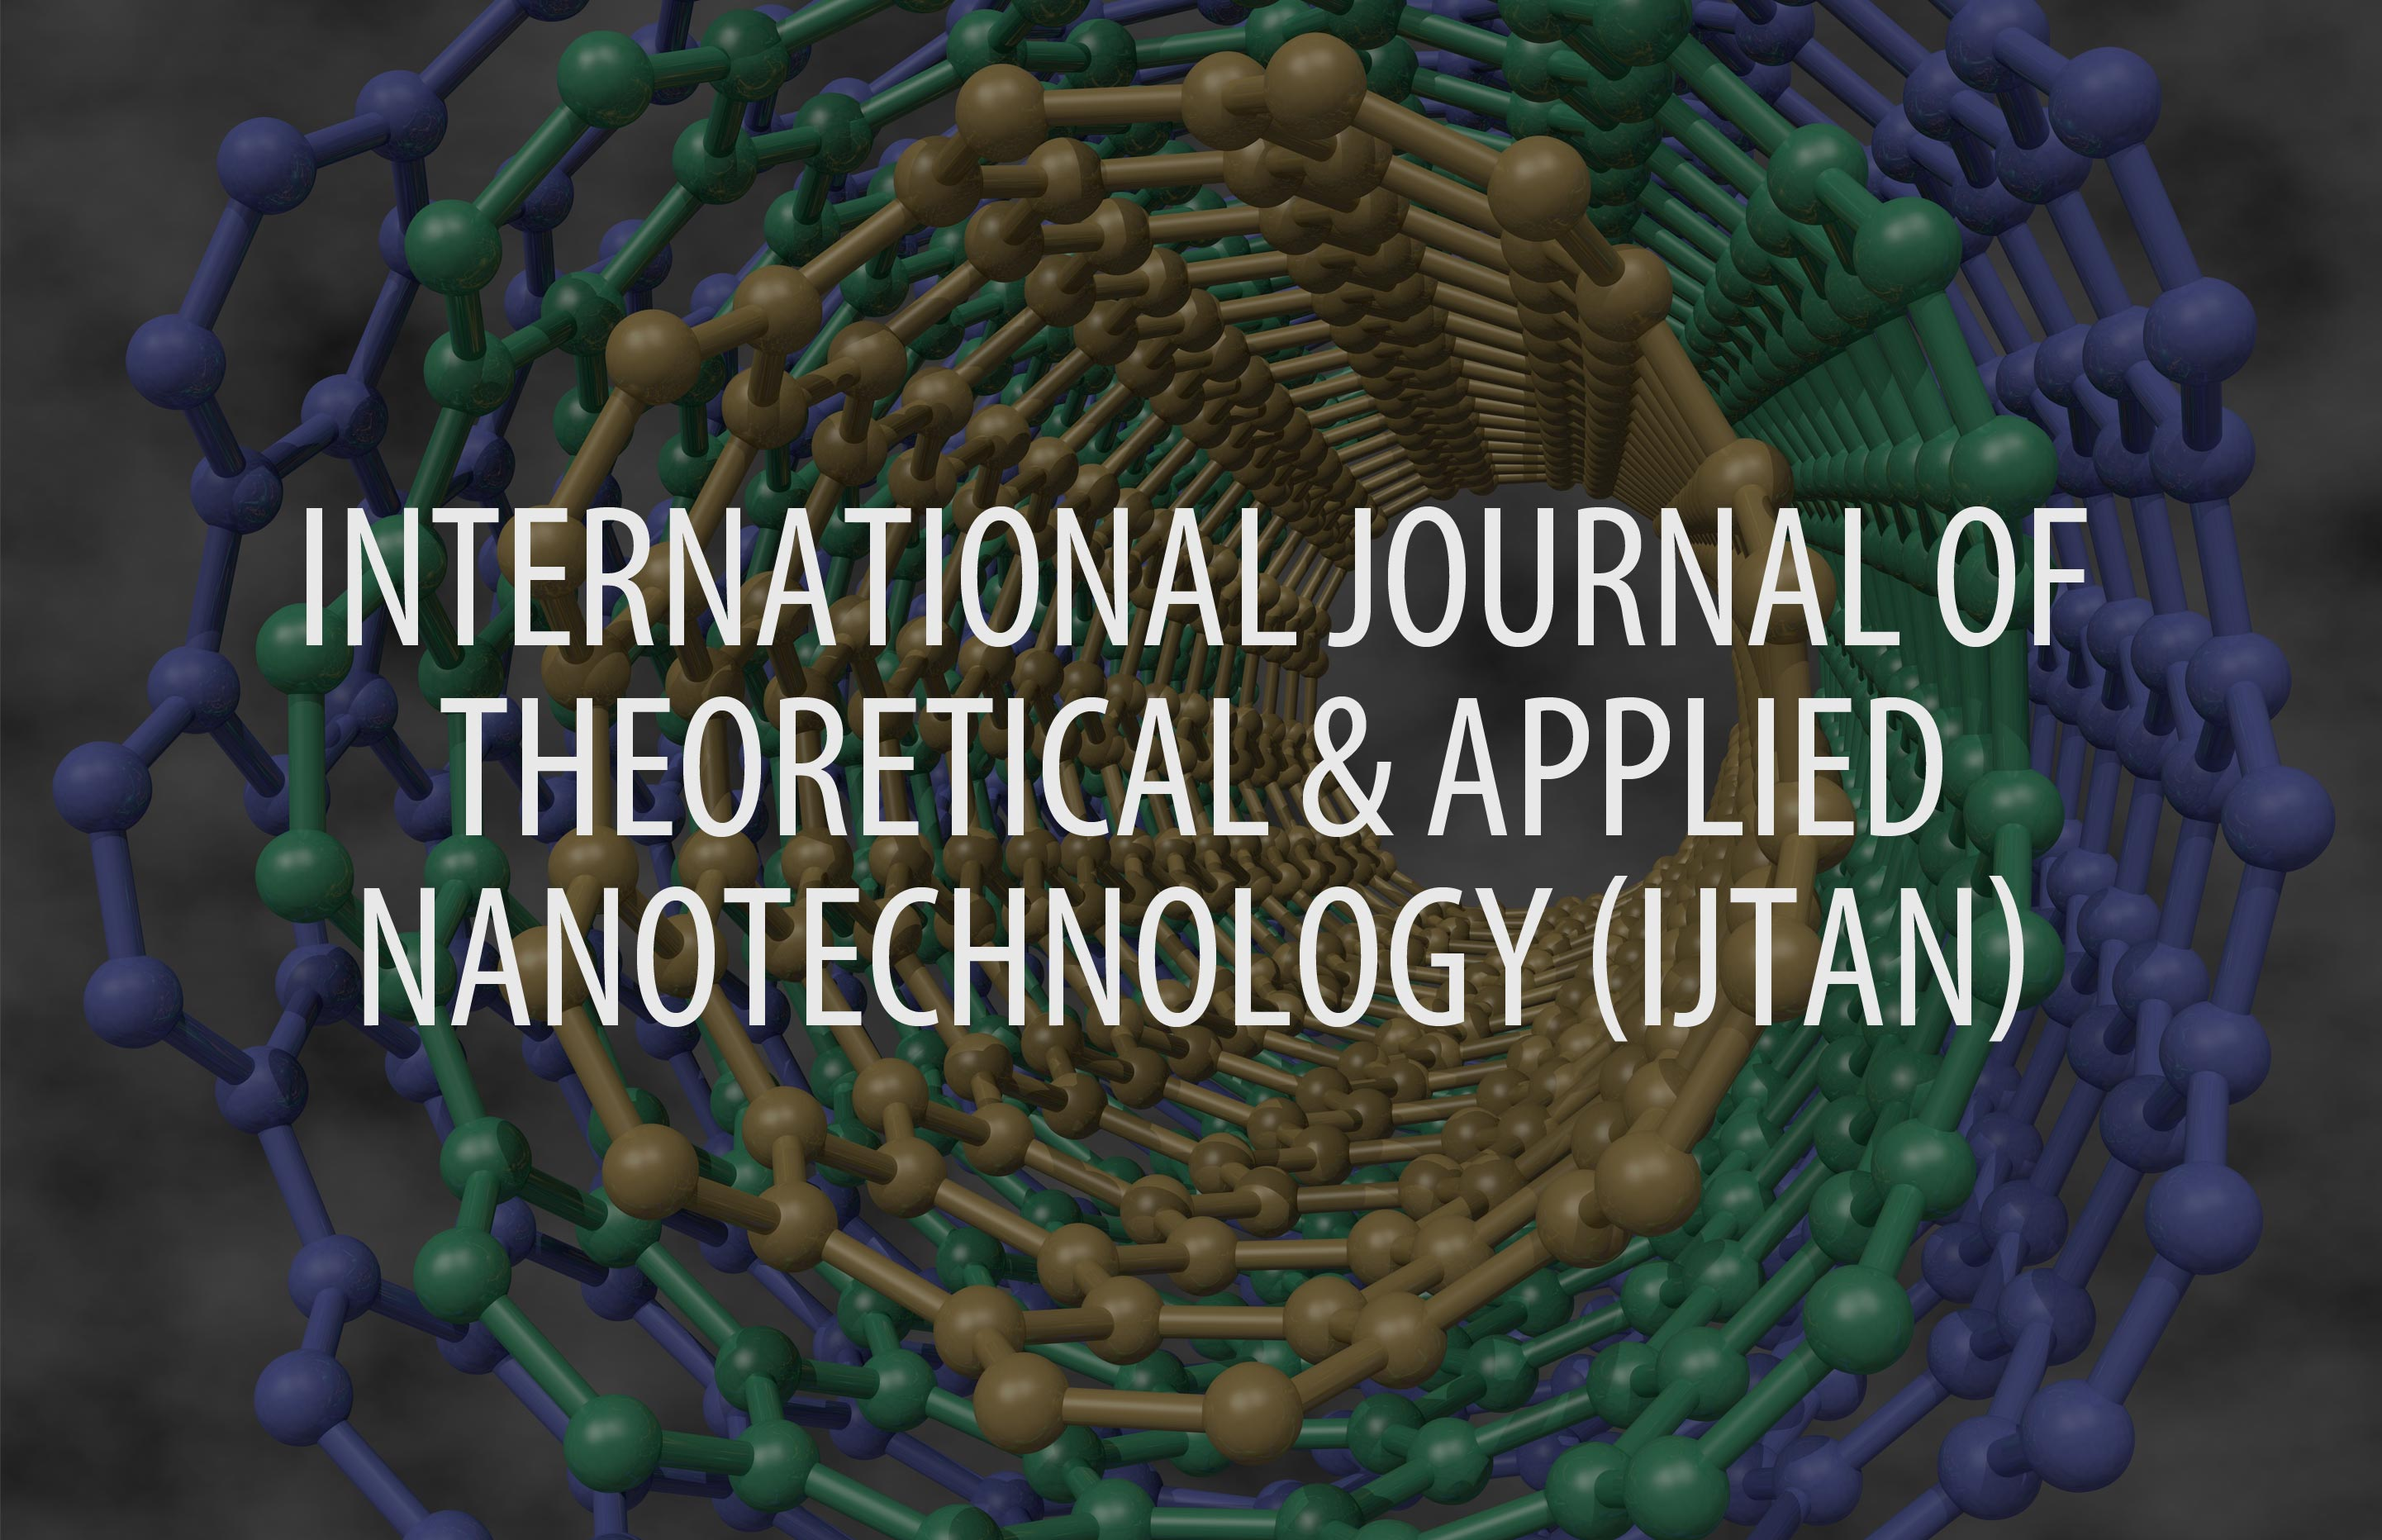 International Journal of Theoretical and Applied Nanotechnology (IJTAN)